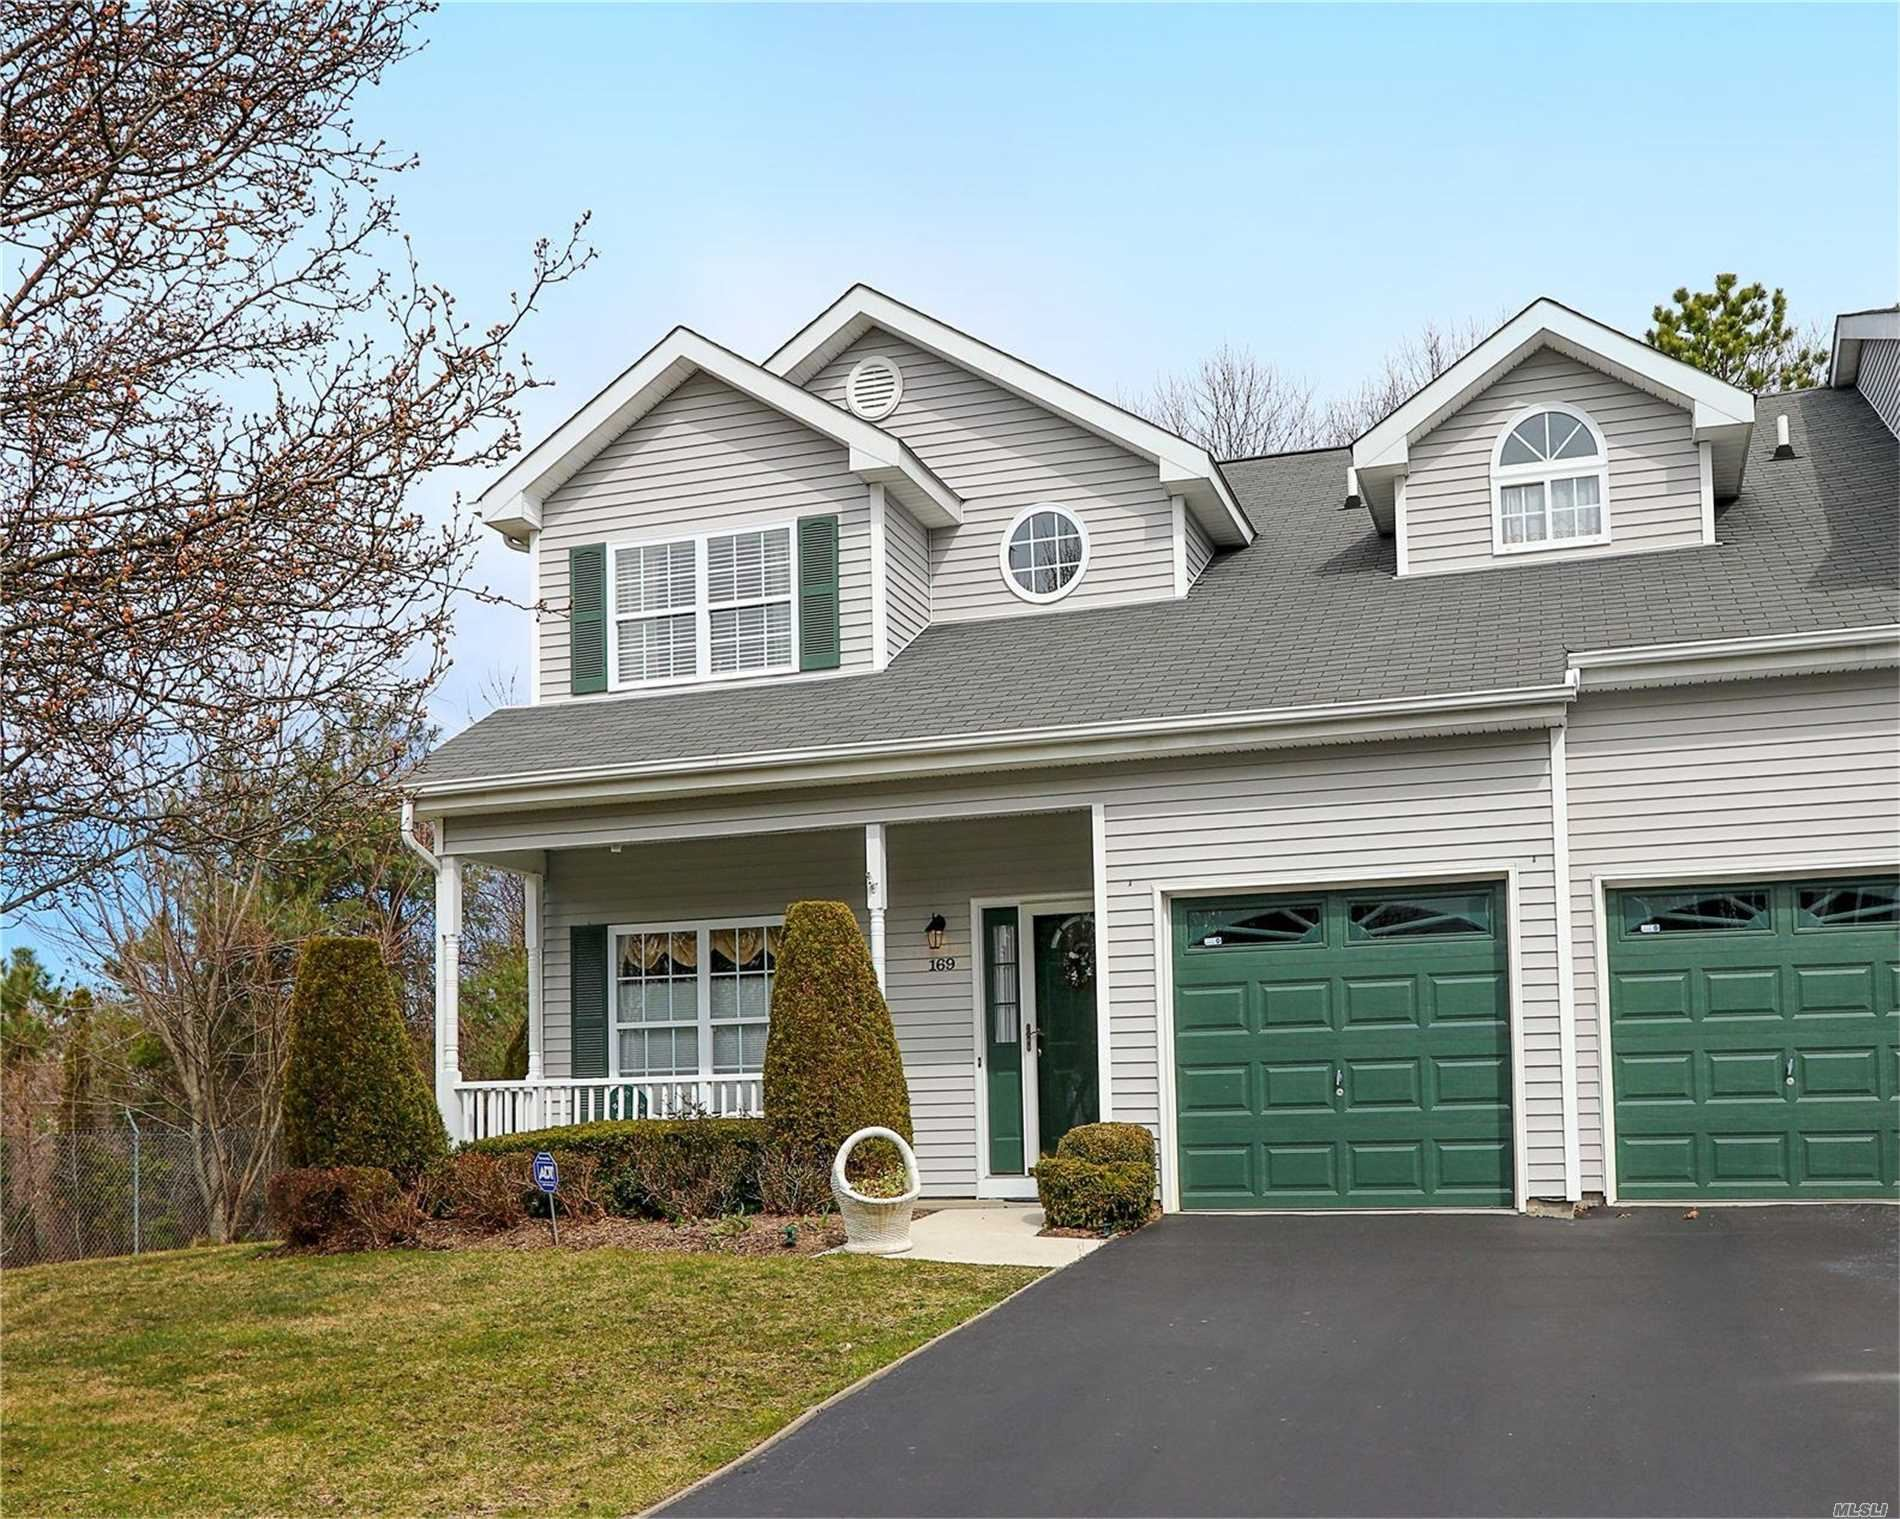 169 Willow Wood Drive, Oakdale, NY 11769 - MLS#: 3213185